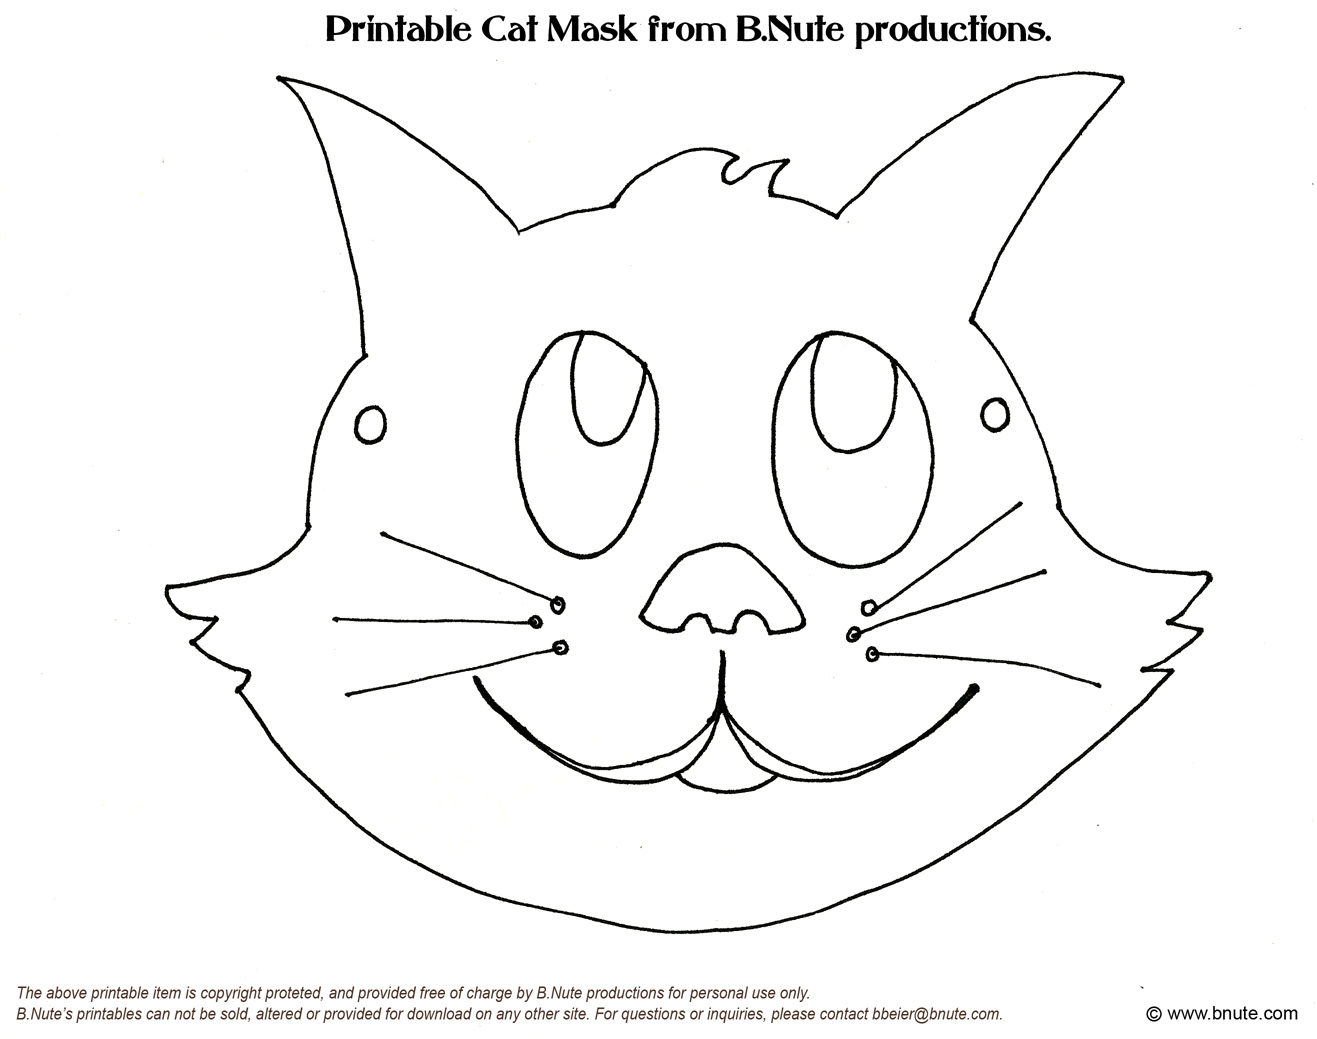 4 Images of Printable Cat Mask